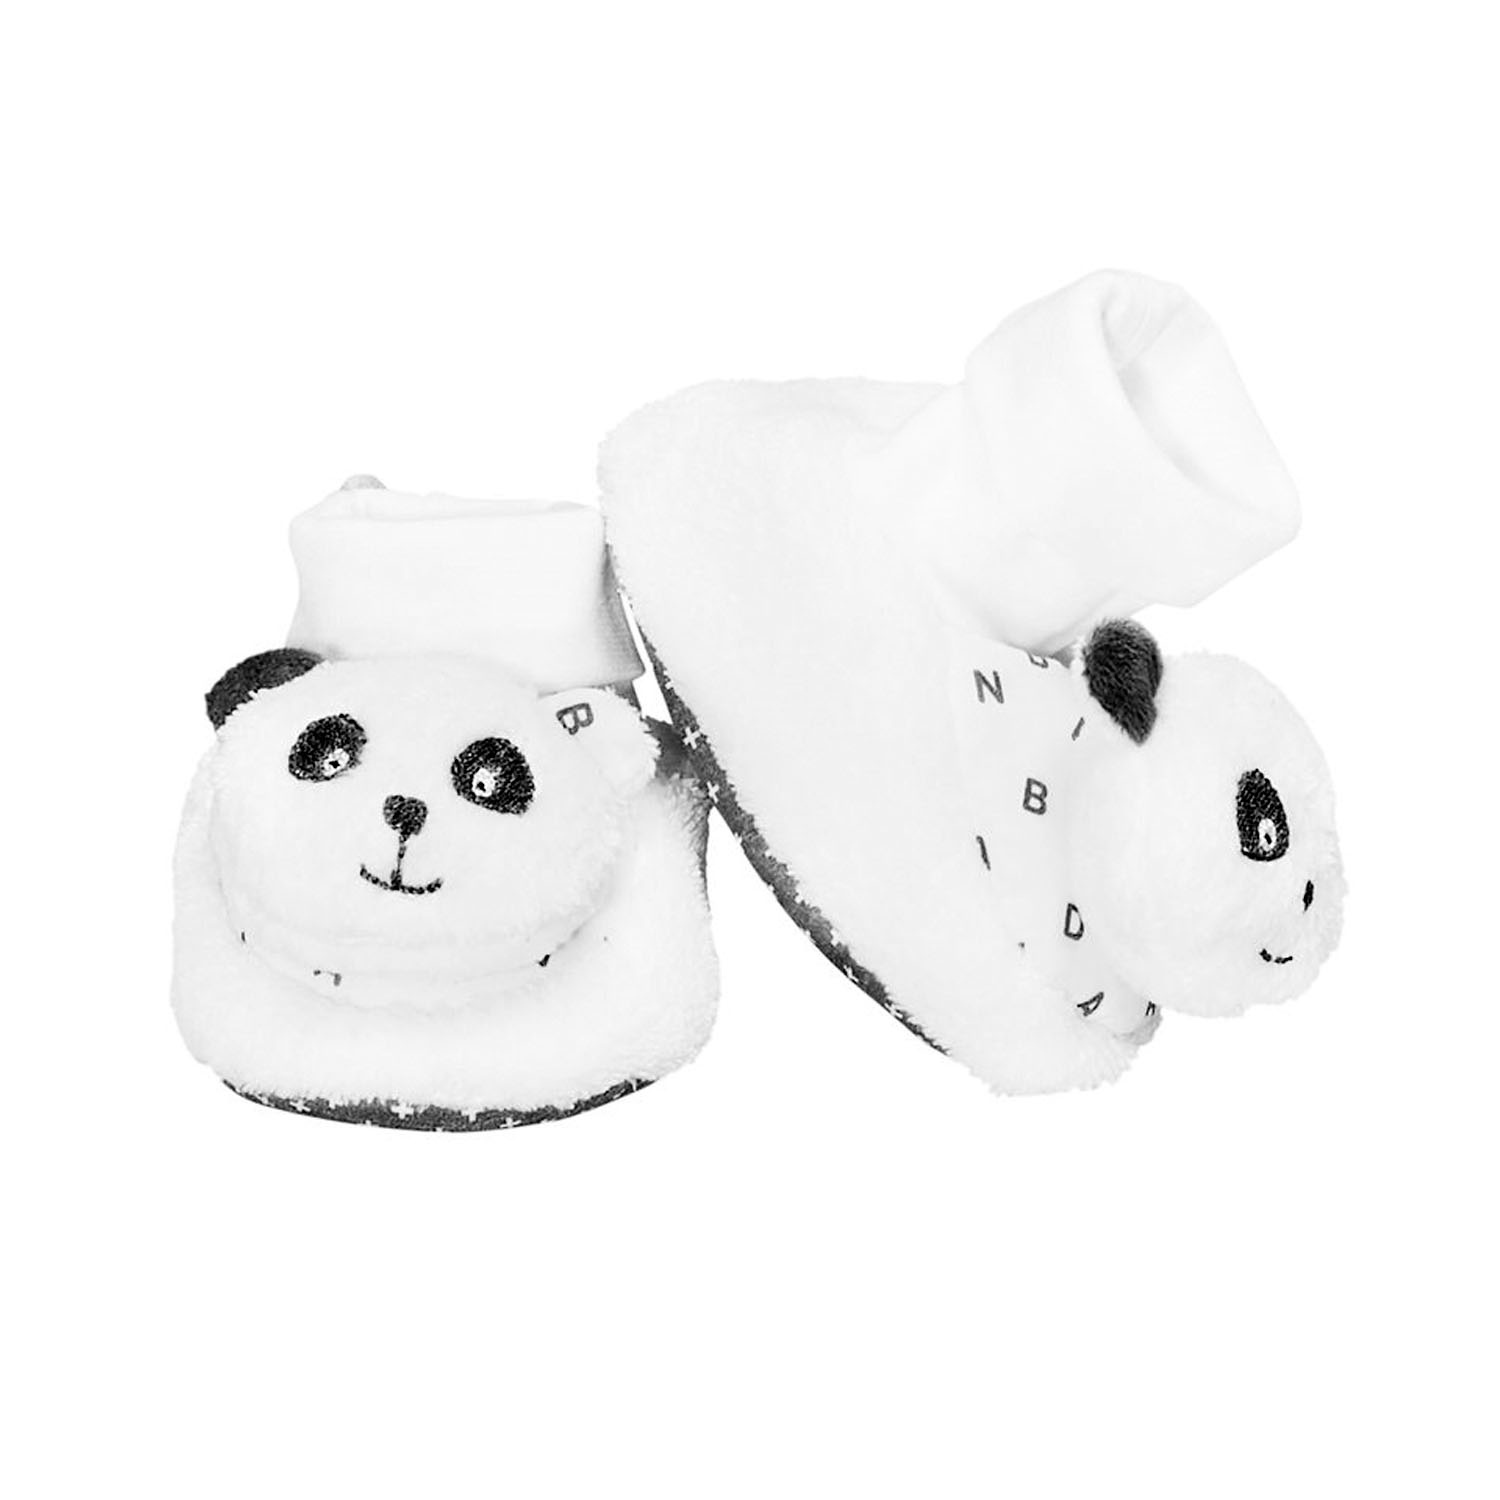 Chao Chao chaussons   0-6 mois de Sauthon Baby Déco